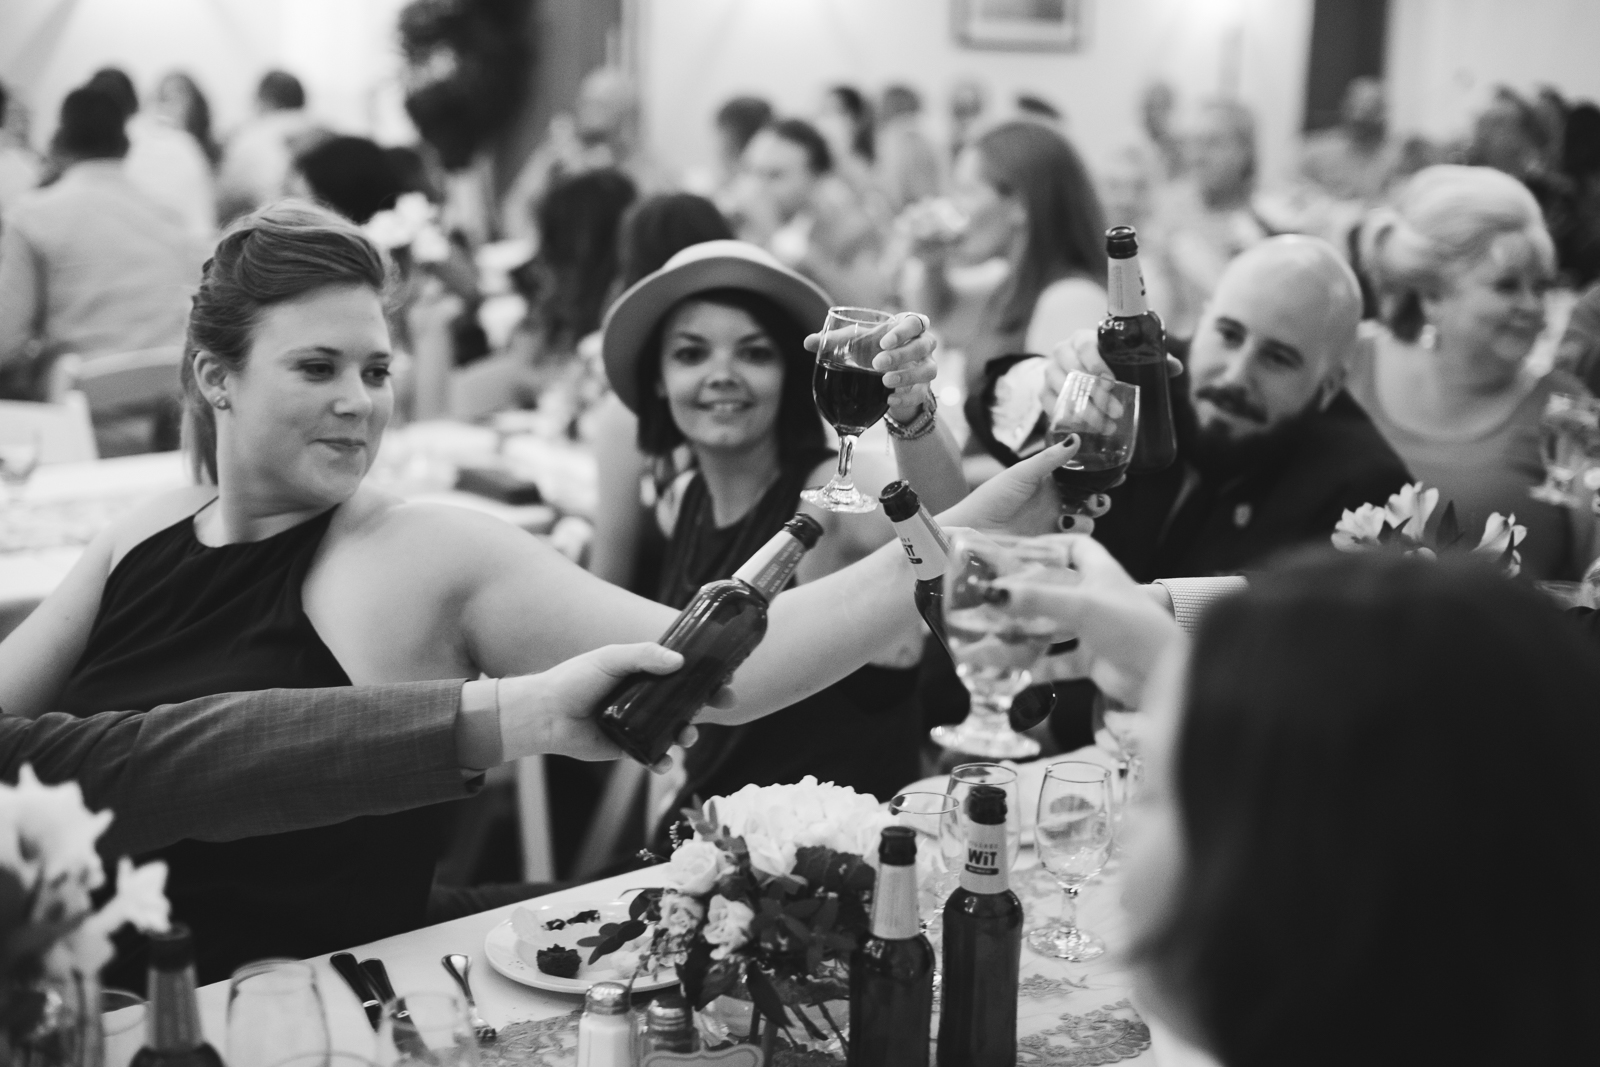 122Willow_and_Wolf_Photography_Katie_and_James_Waterton_Wedding_Blog193-Willow_and_Wolf_Photography_Katie_and_James_Waterton_Wedding_Reception_BEC_6157